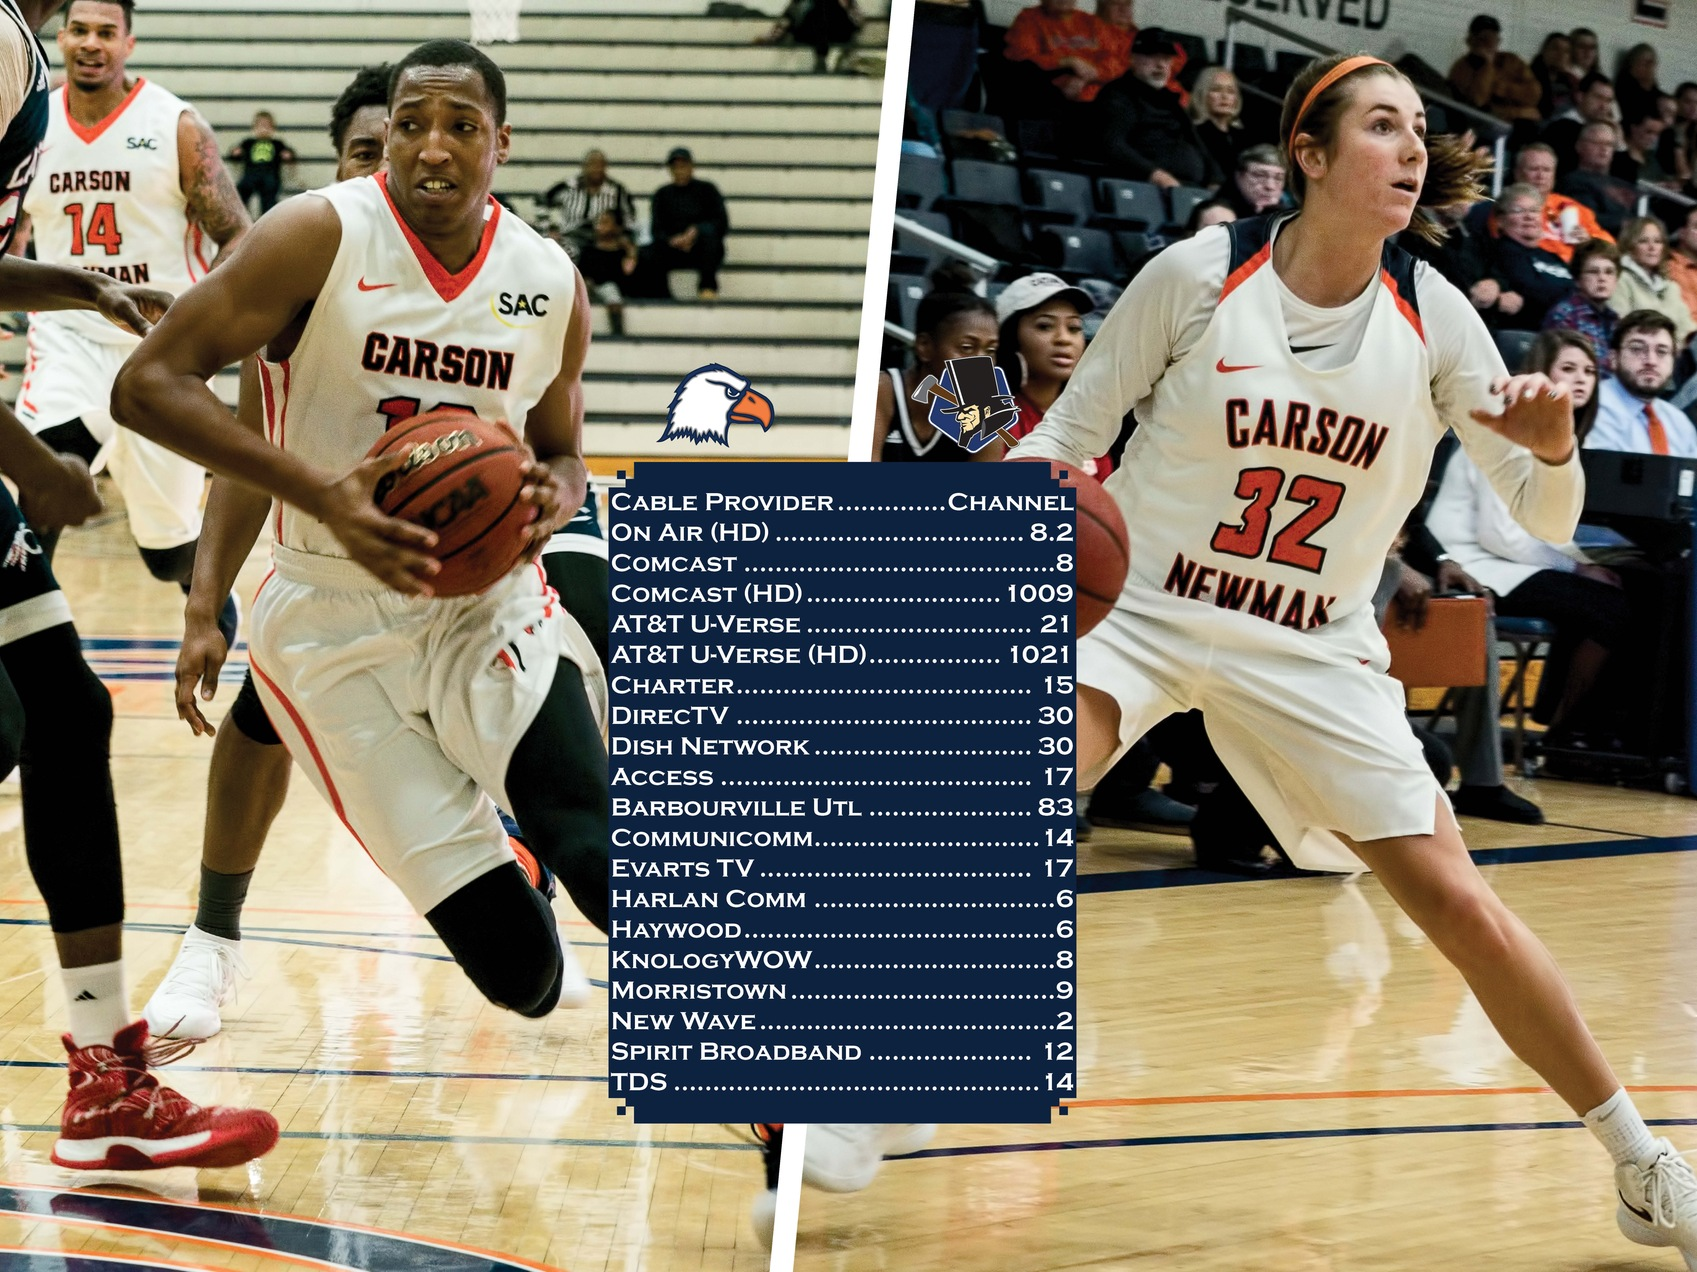 Carson-Newman's hoops doubleheader versus LMU set for local television broadcast